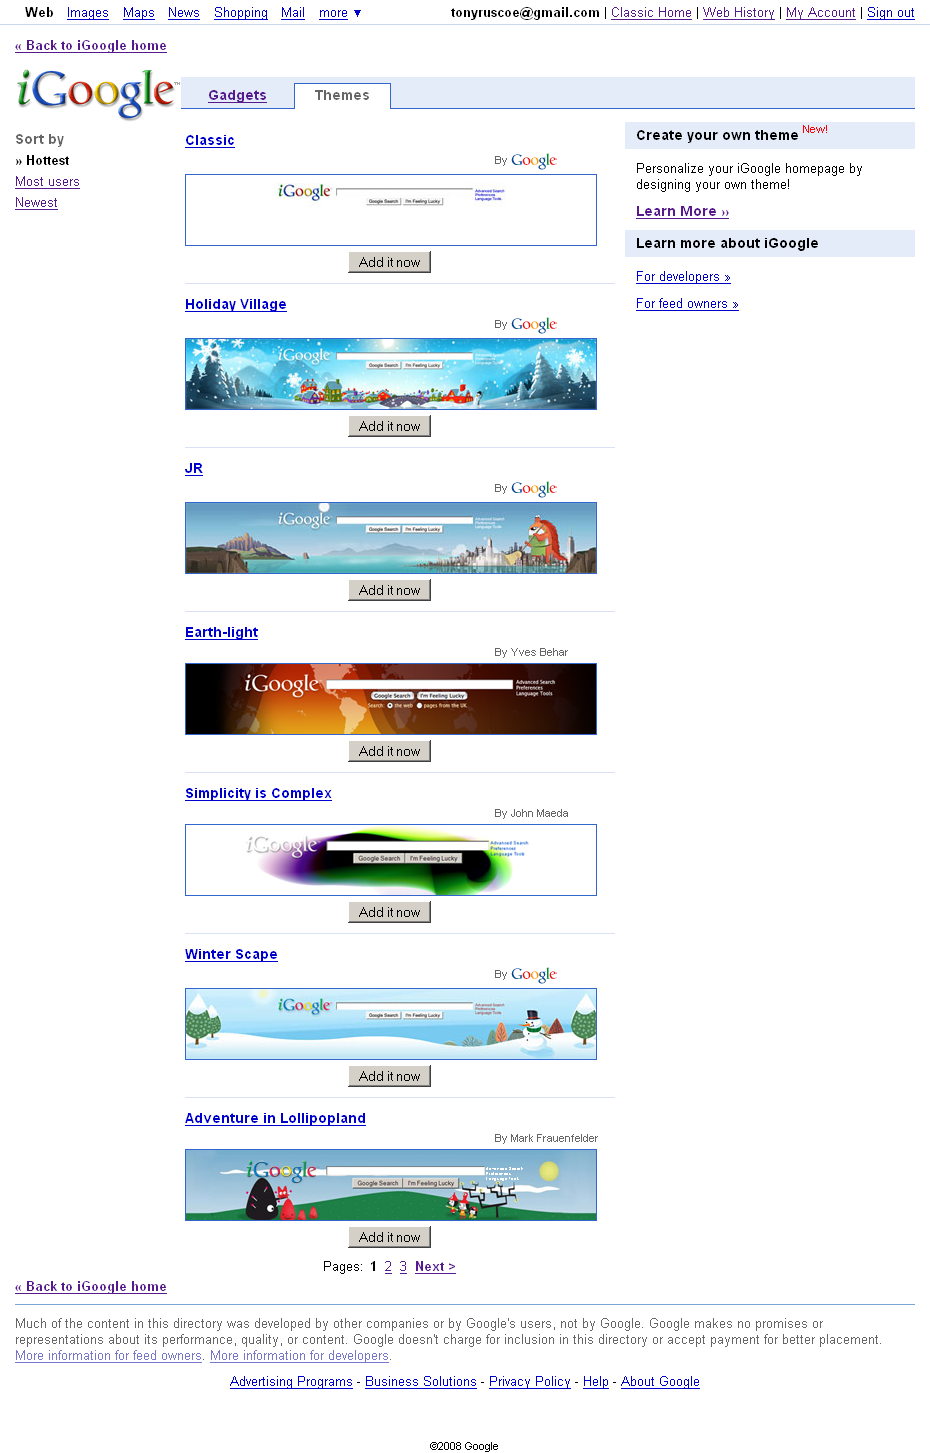 Google themes view - Not Only Does The Directory Allow You To View And Select Themes But You Can Now Also Rate Them Add Comments And View How Many Users Each One Has